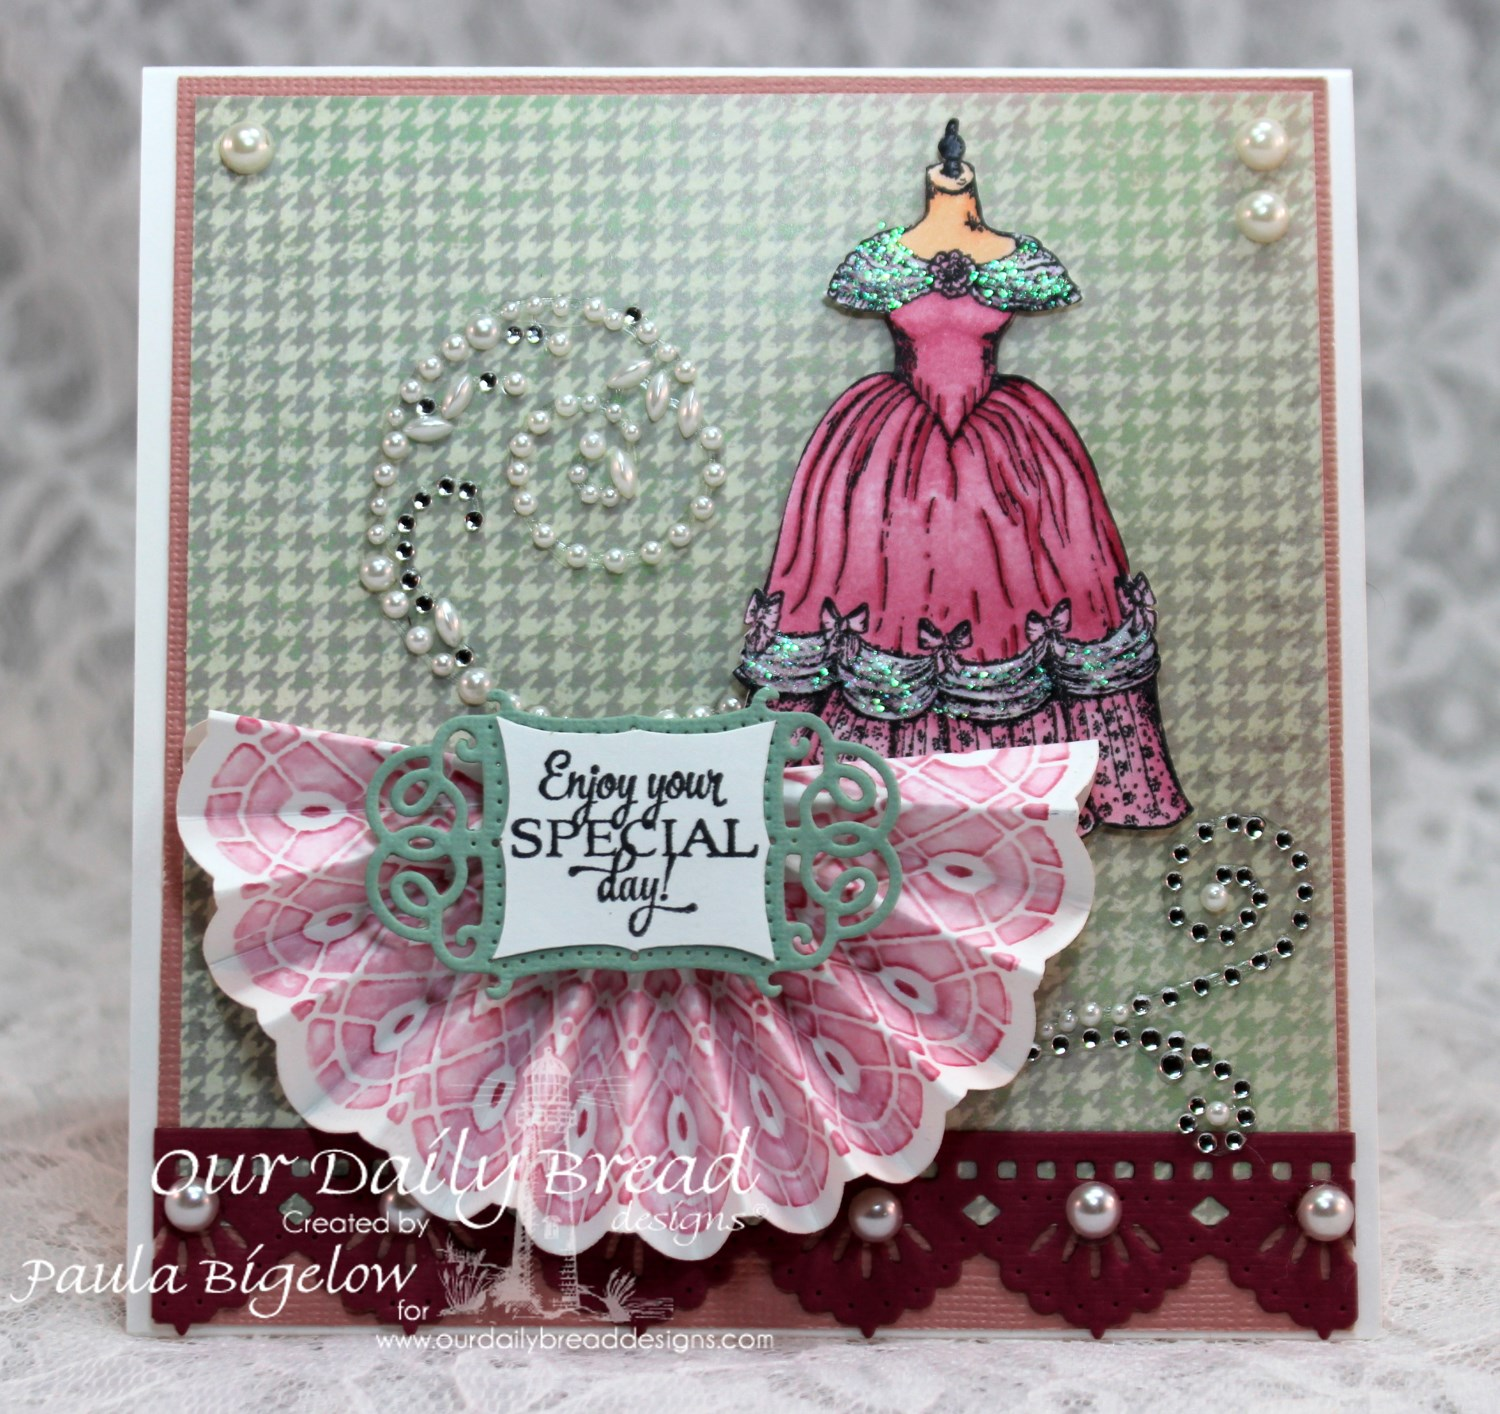 Stamps - Our Daily Bread Designs Birthday Doily, Victoria, ODBD Custom Doily Dies, ODBD Custom Vintage Flourish Dies, ODBD Custom Beautiful Borders Dies, ODBD Soulful Stitches Paper Collection